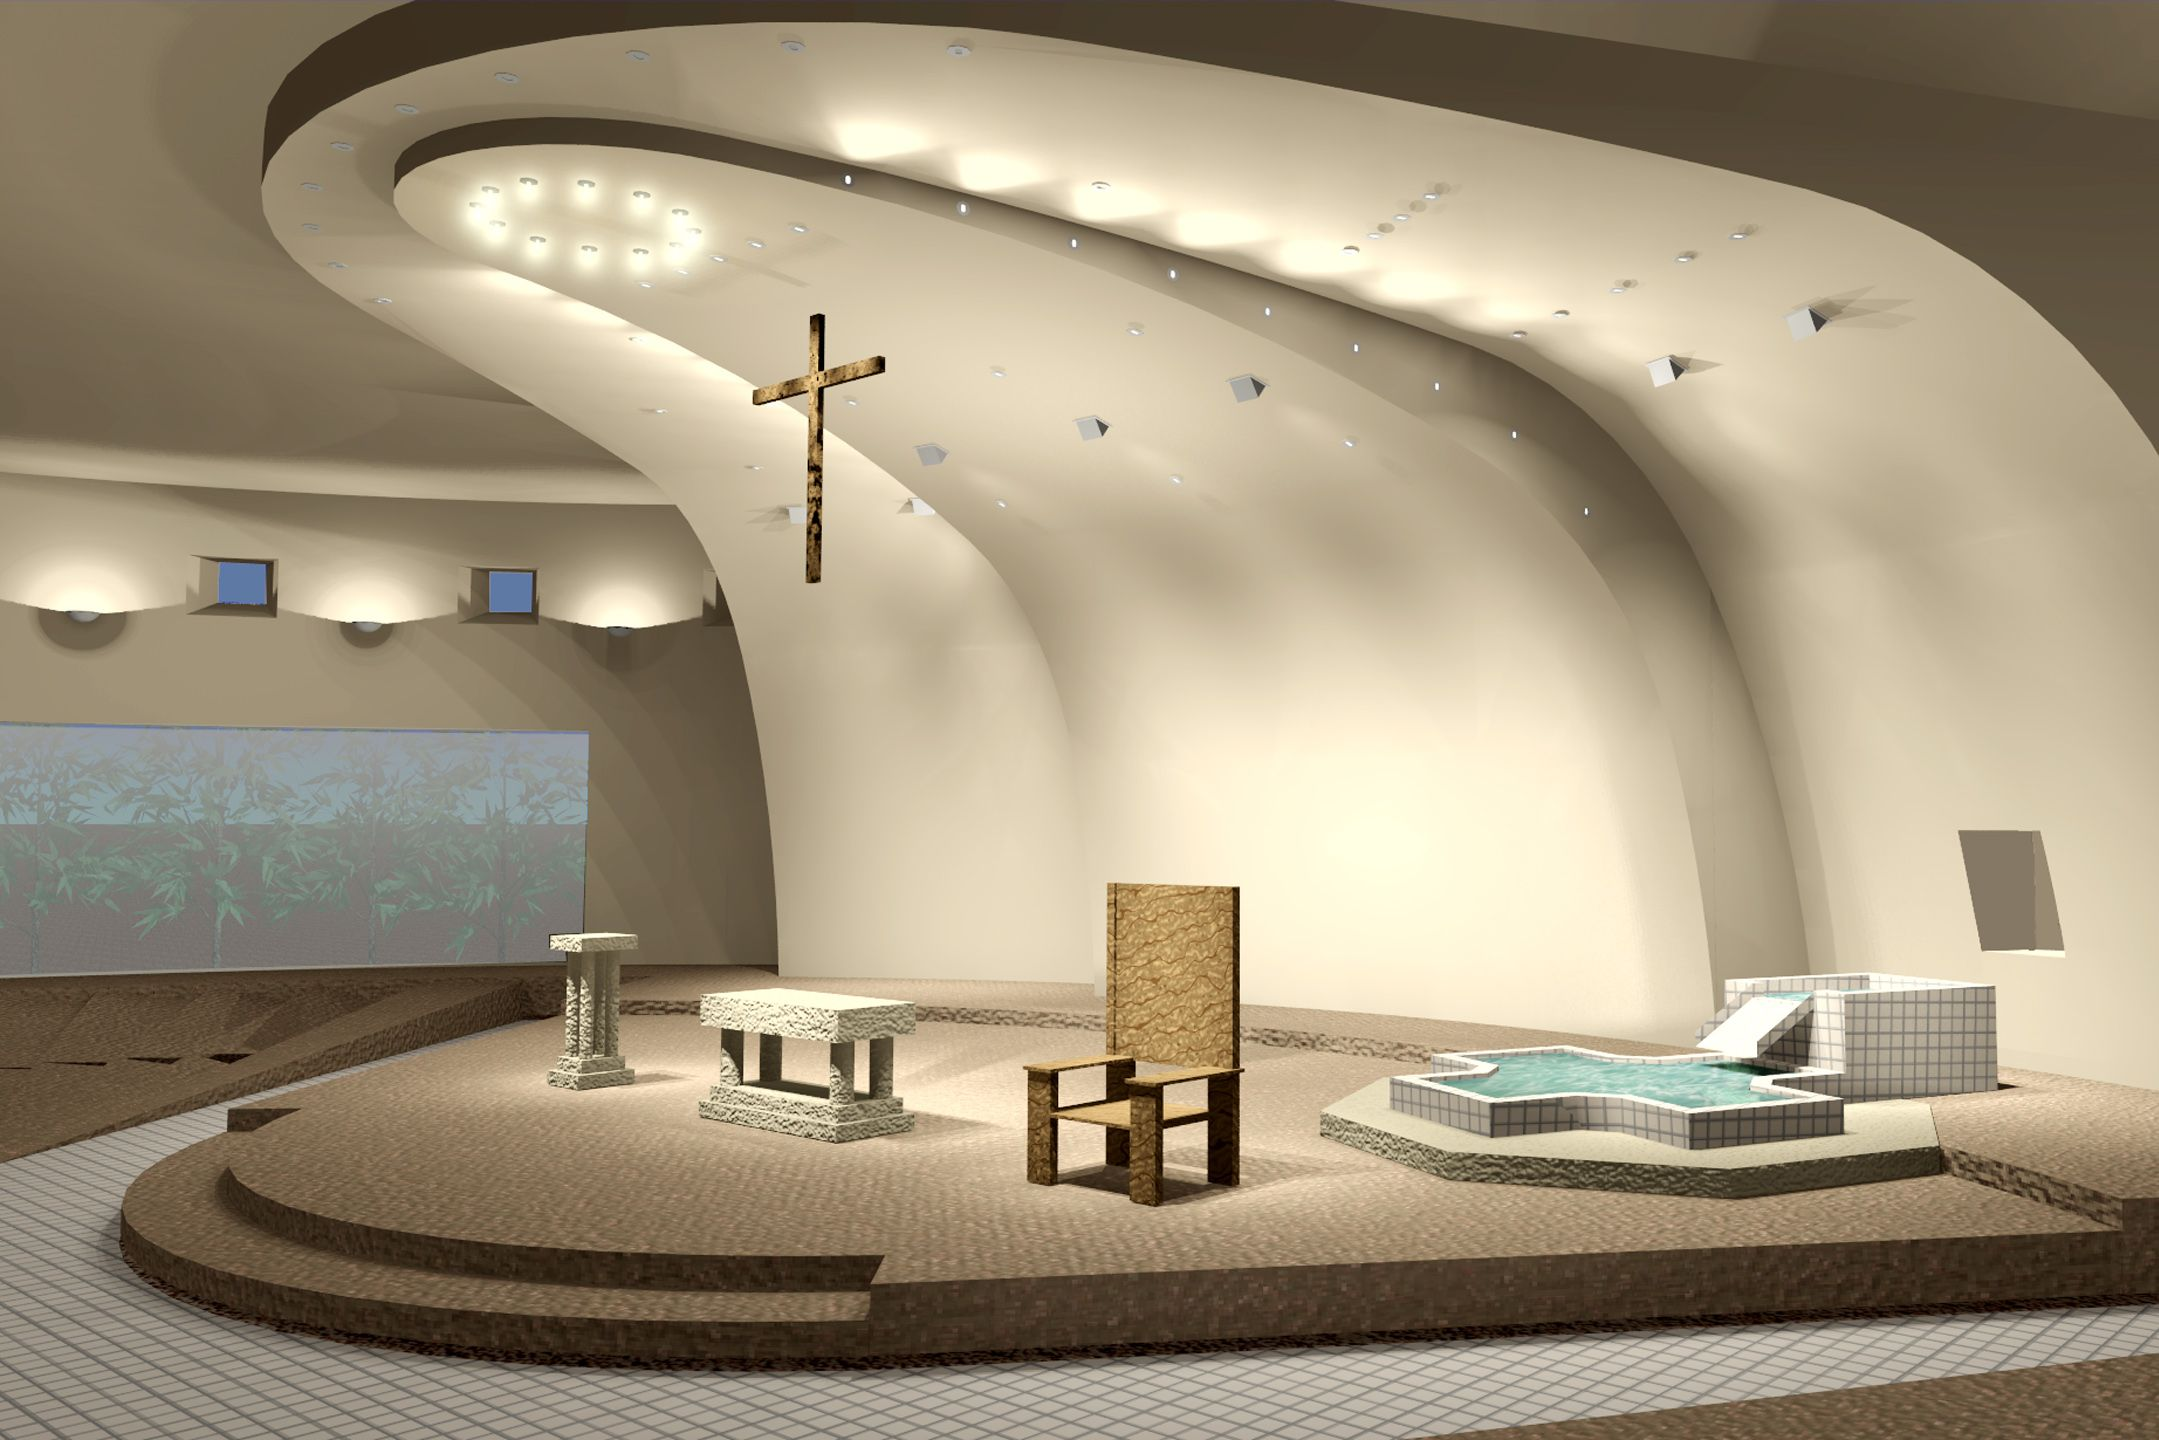 Church Interior Design Ideas excellent modern church interior design also 25 modern architectural designs from around the world from up 18 Best Photos Of Contemporary Church Interior Design Small Japanese Interior Design Interior Design